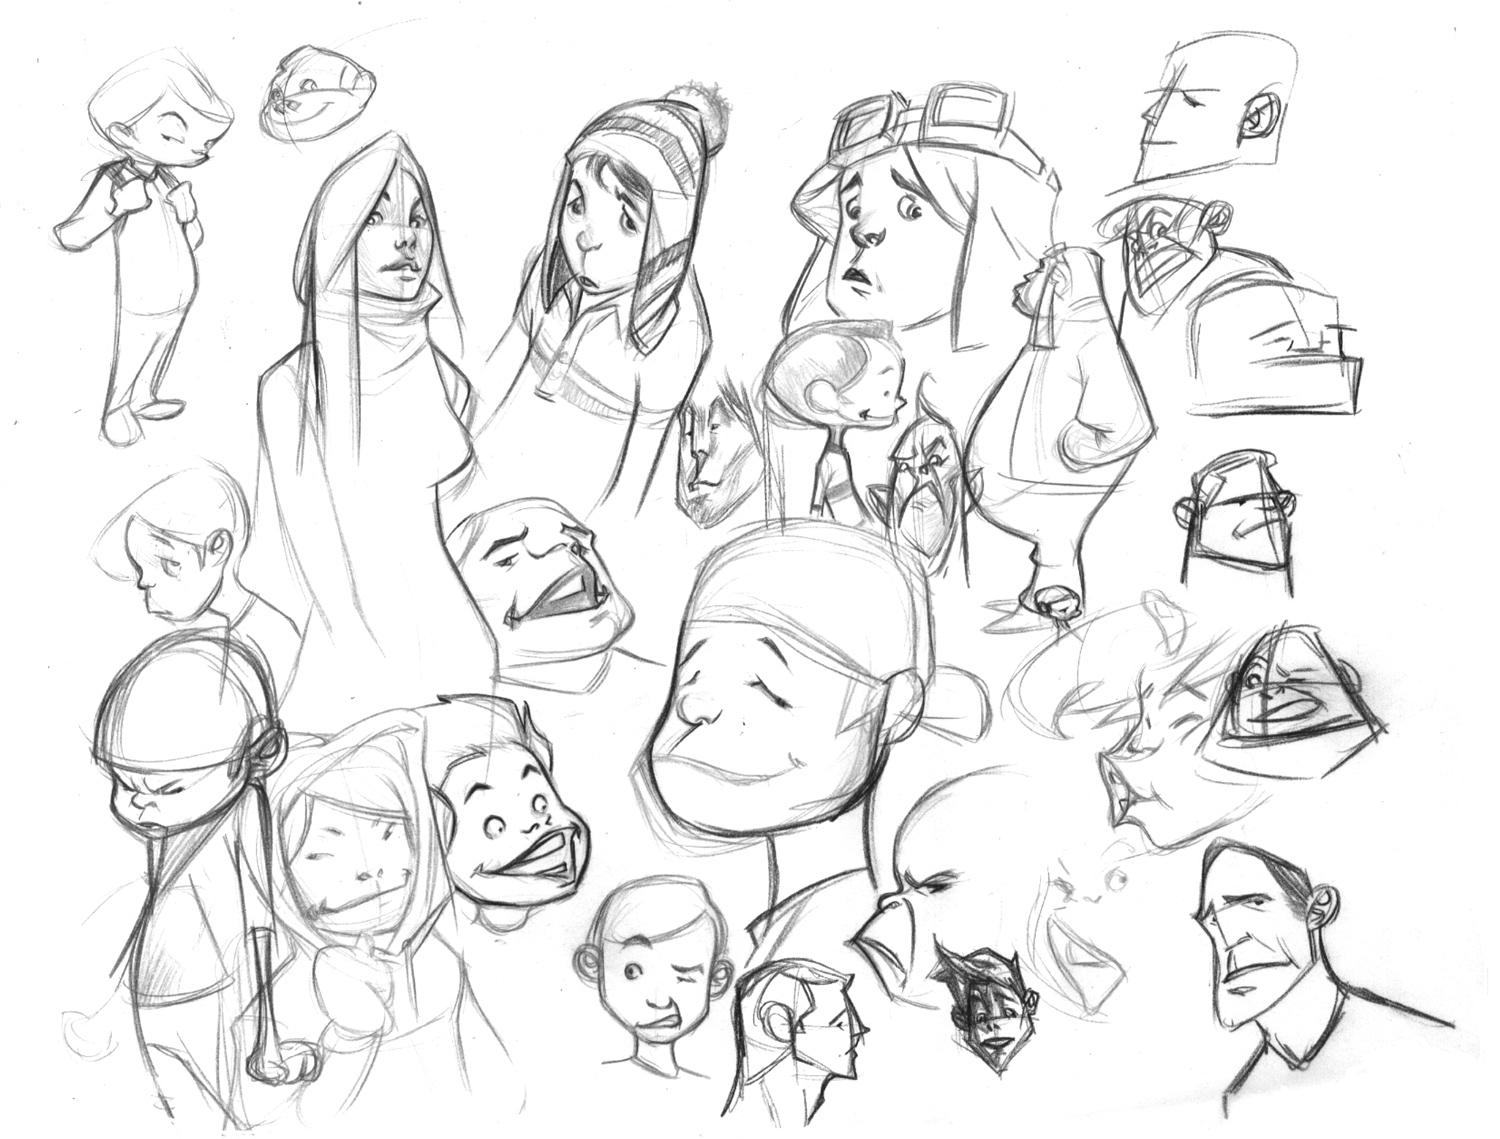 1500x1139 Animated Drawings Of People Cartoon Sketchesbolognafingers